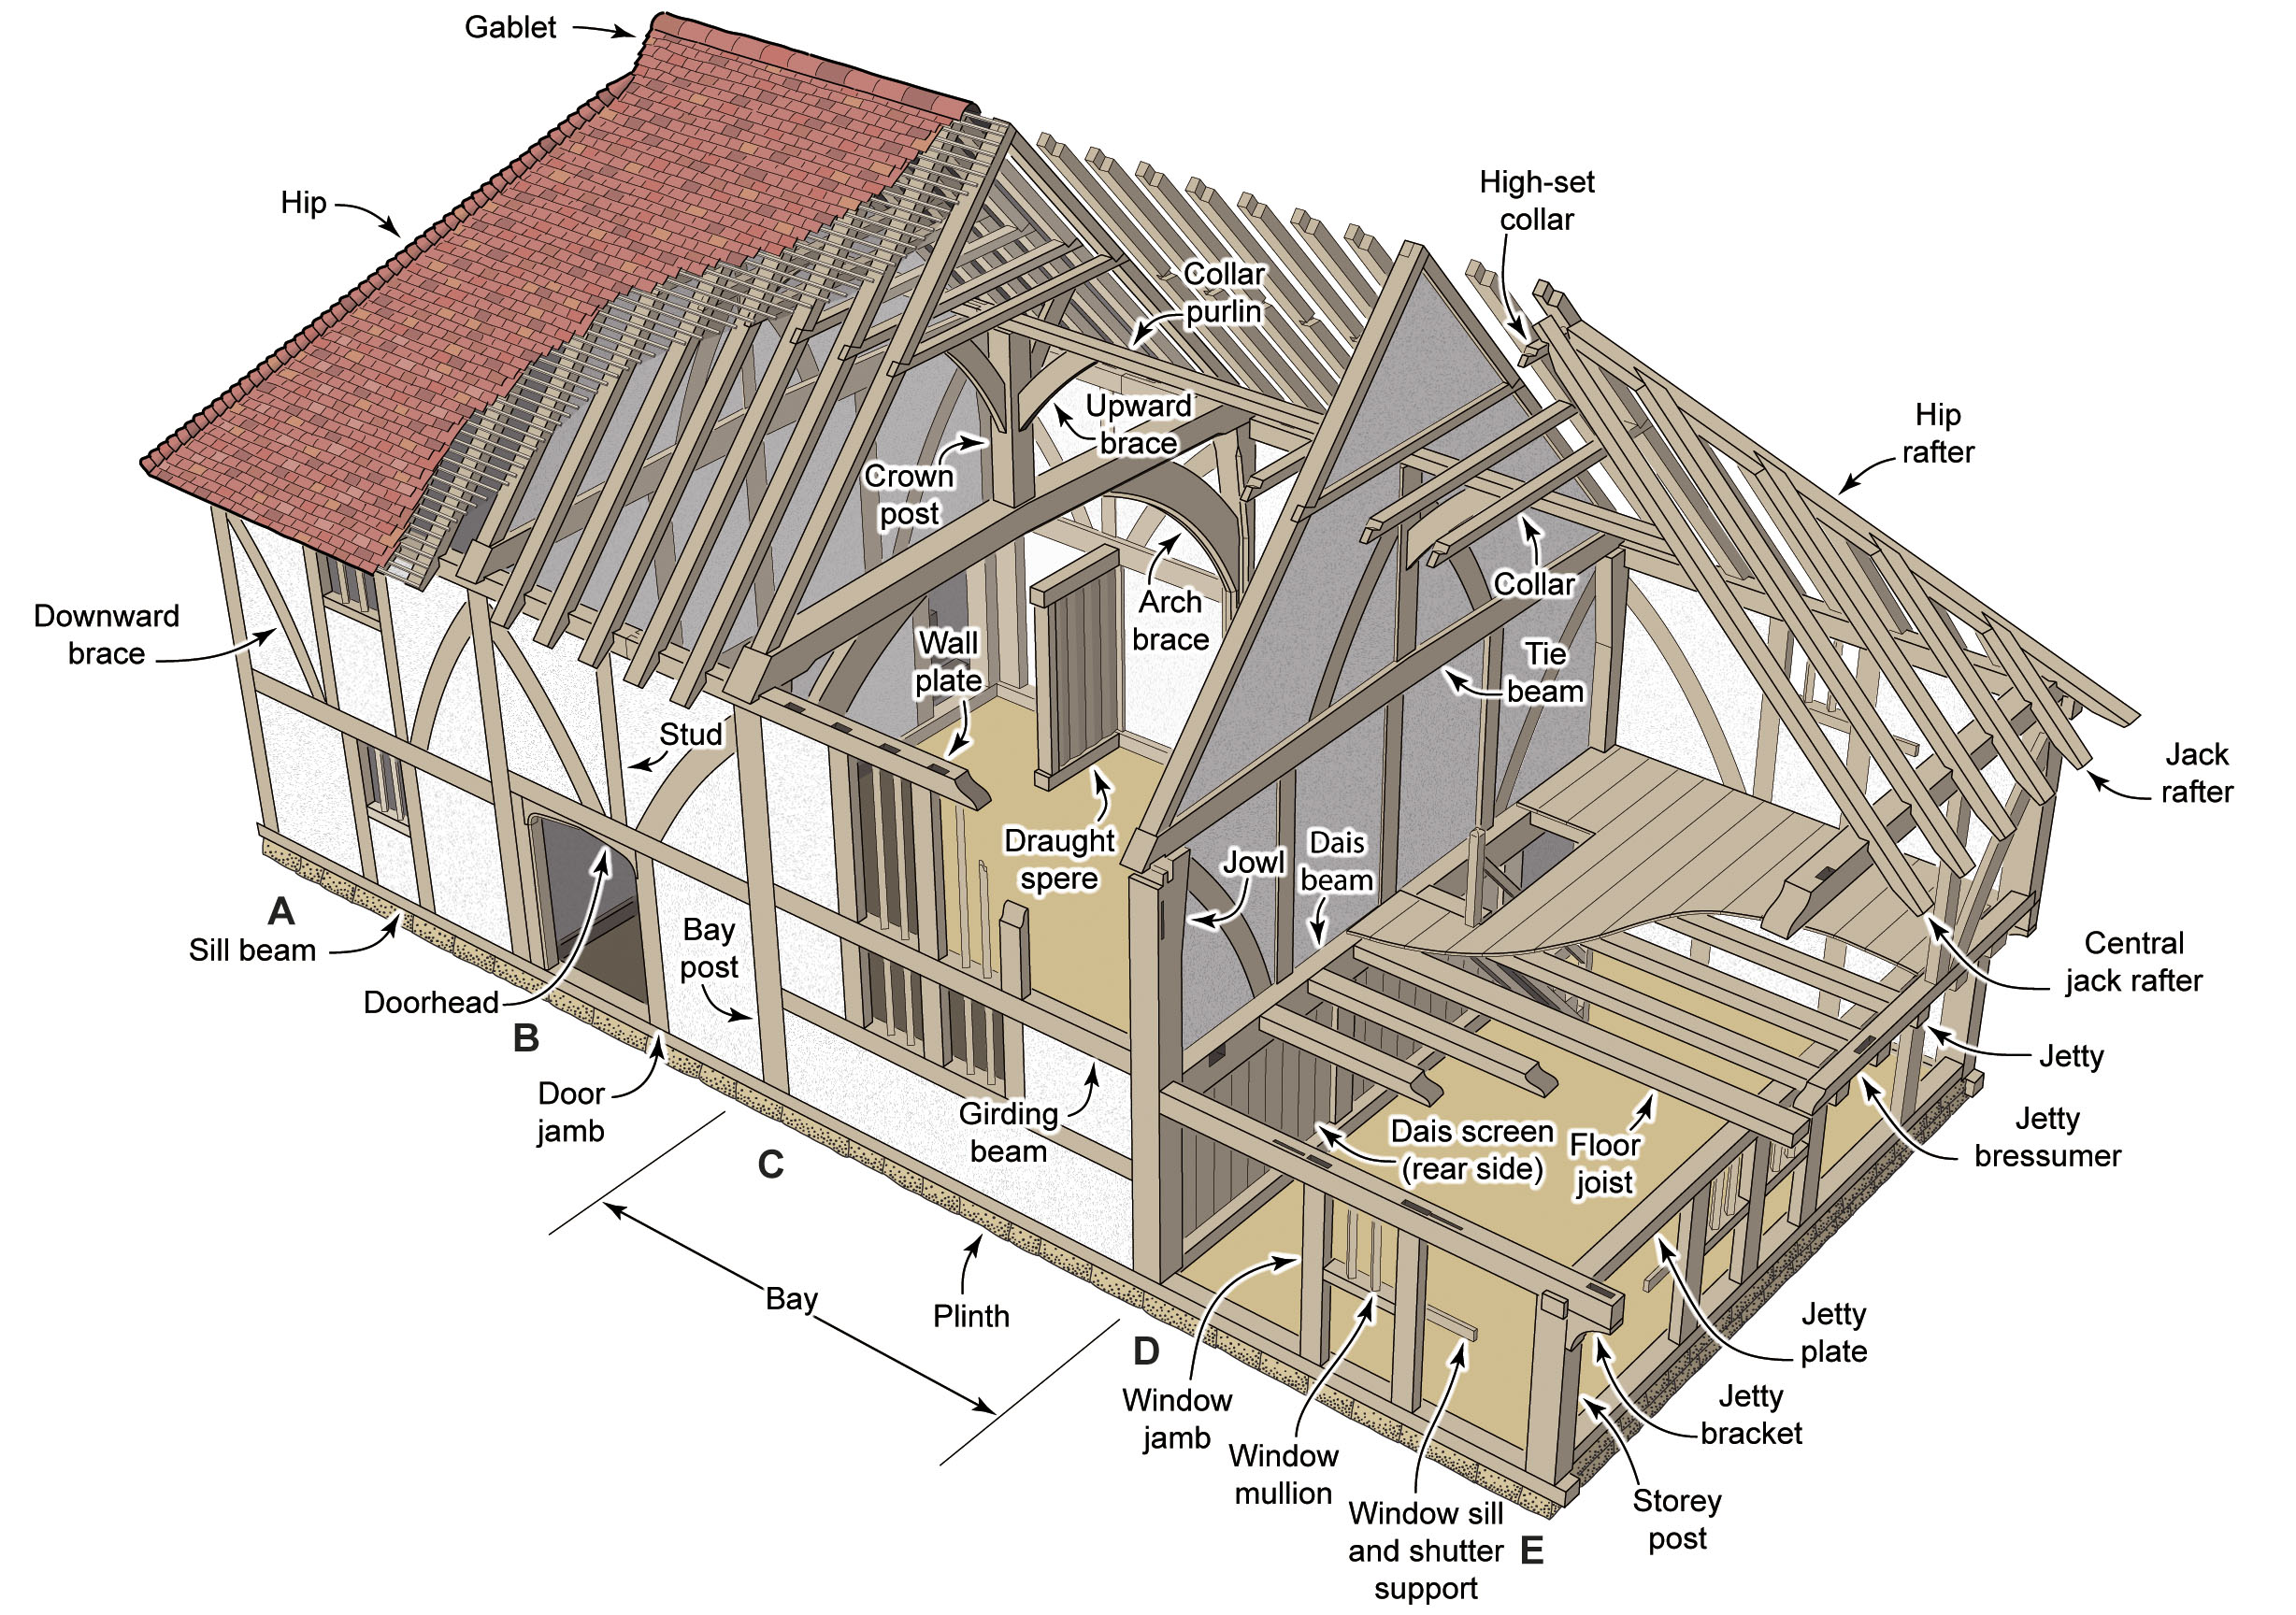 This four-bay hall house is estimated to have required 696 timber components great and small. (Chailey)